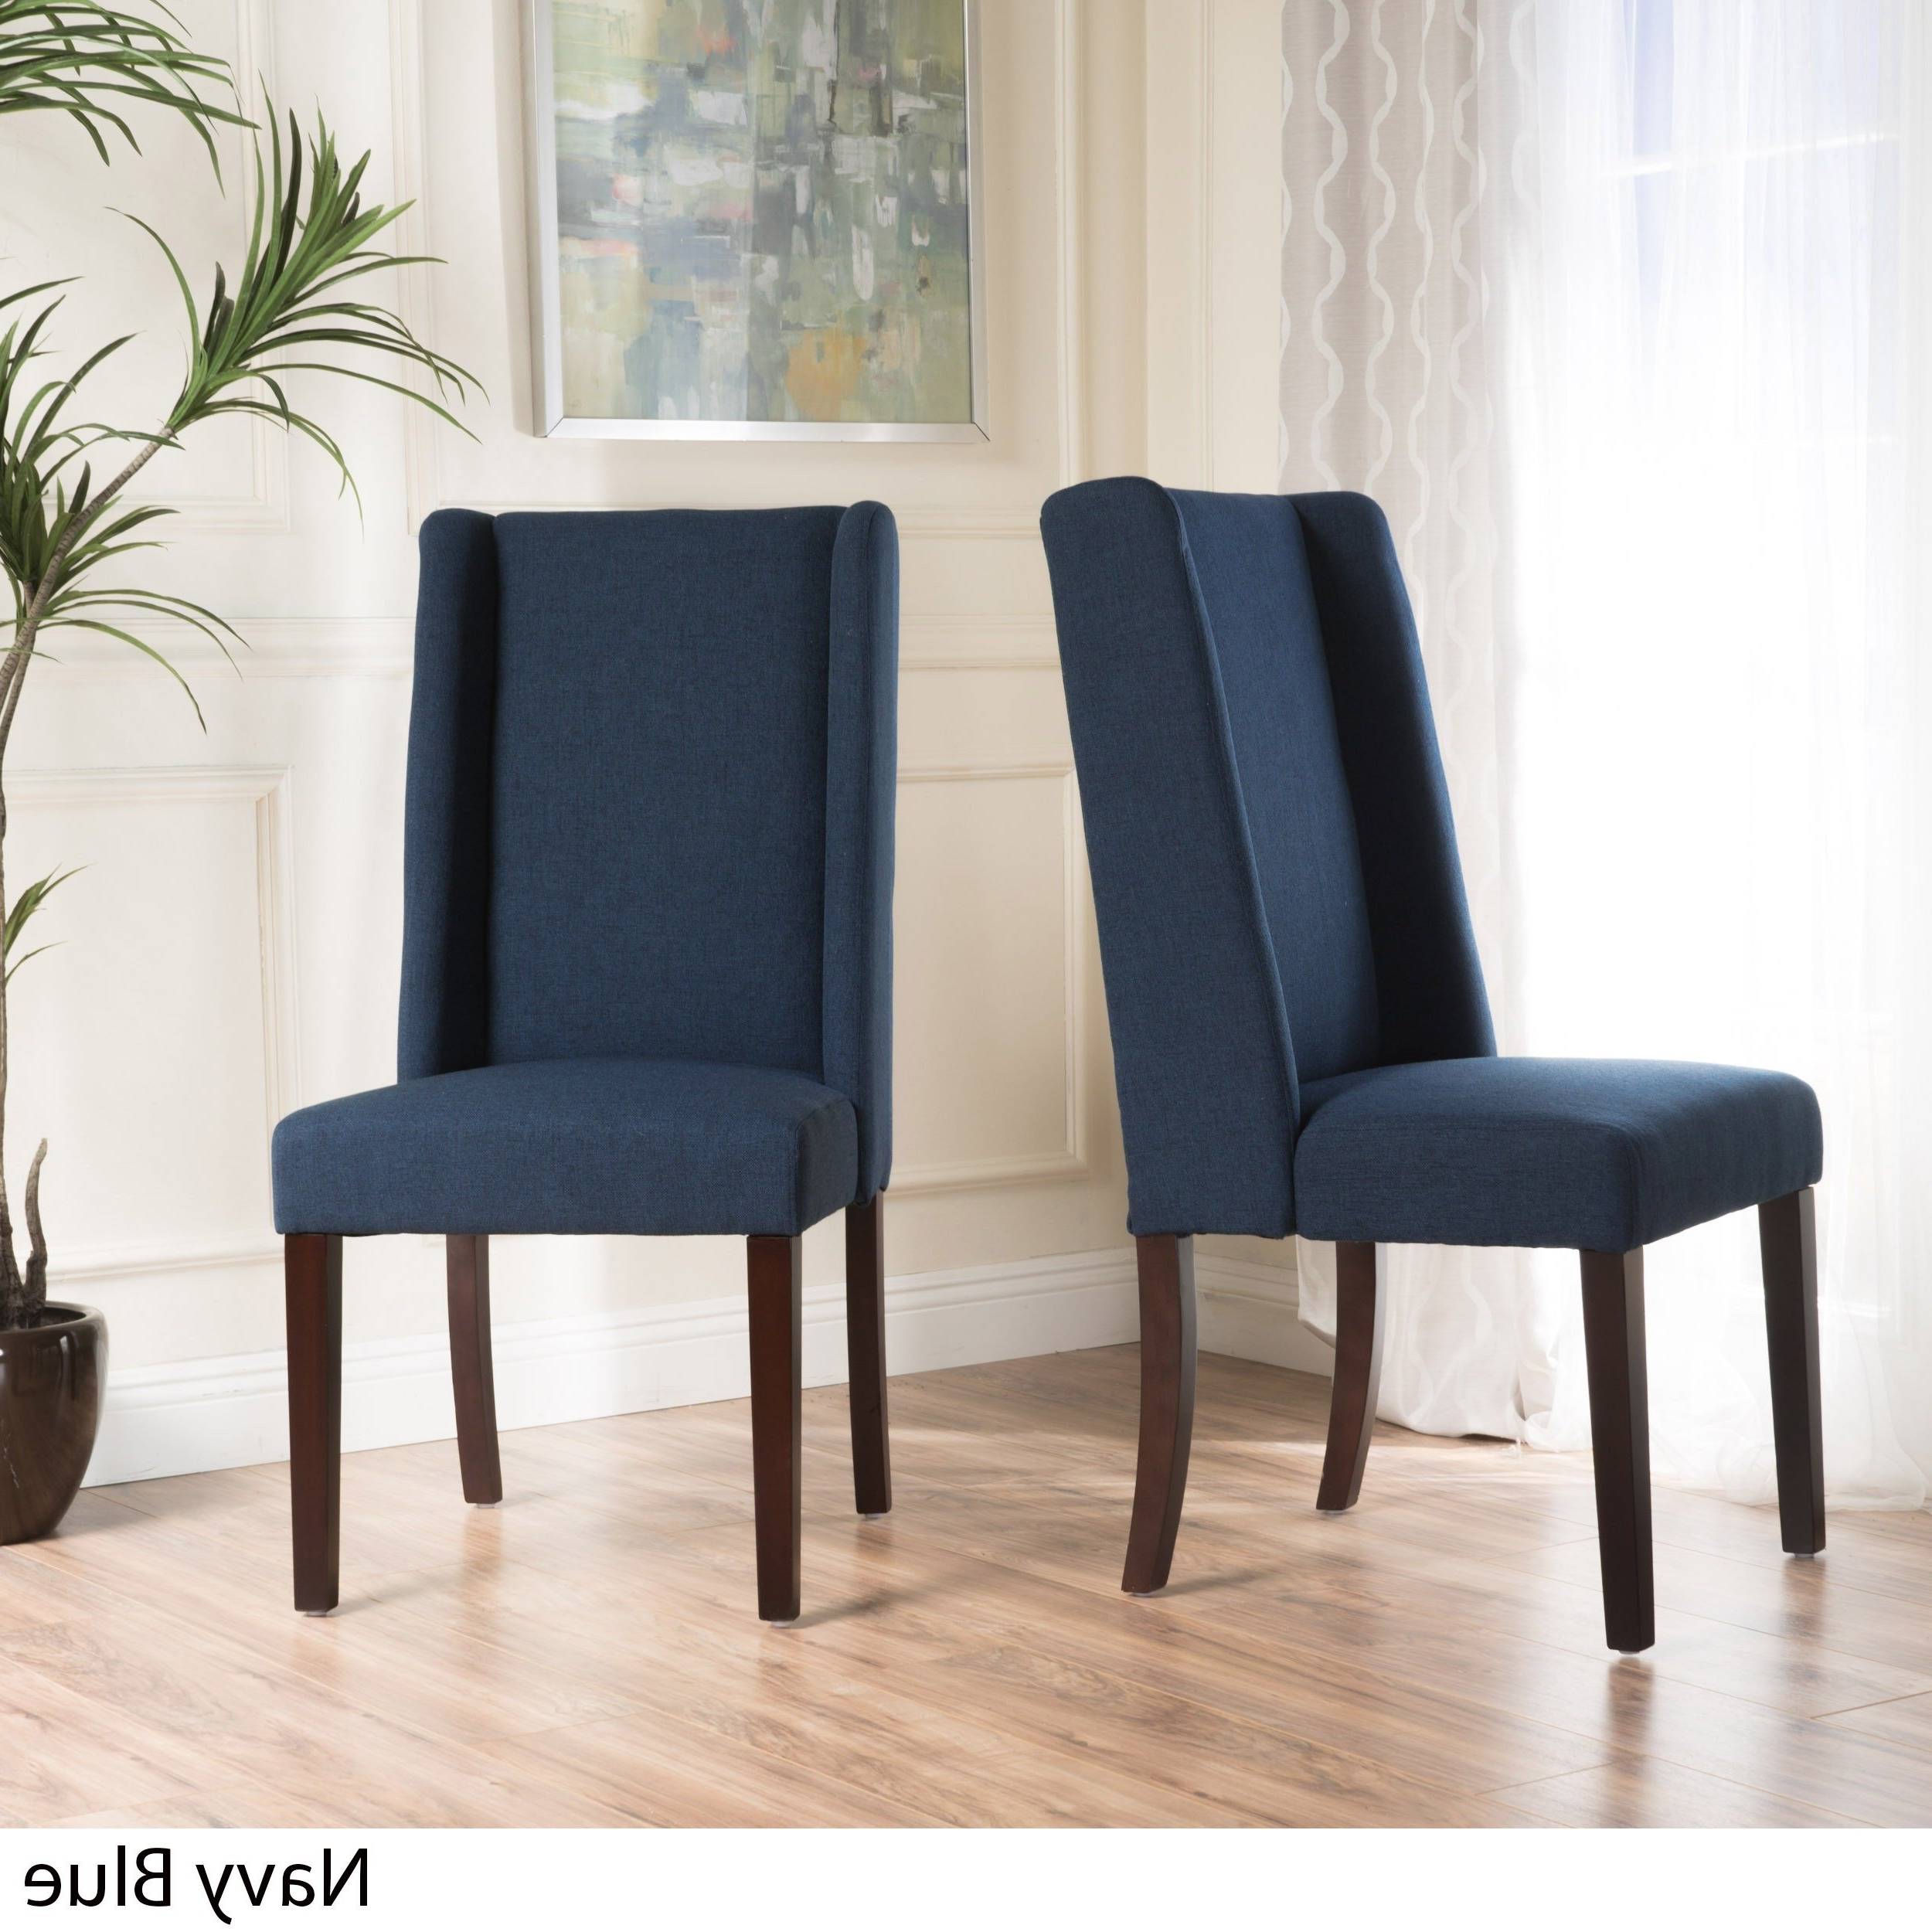 Preferred Shop Rory Wing Back Fabric Dining Chair (Set Of 2)Christopher Regarding Rory Sofa Chairs (Gallery 9 of 20)